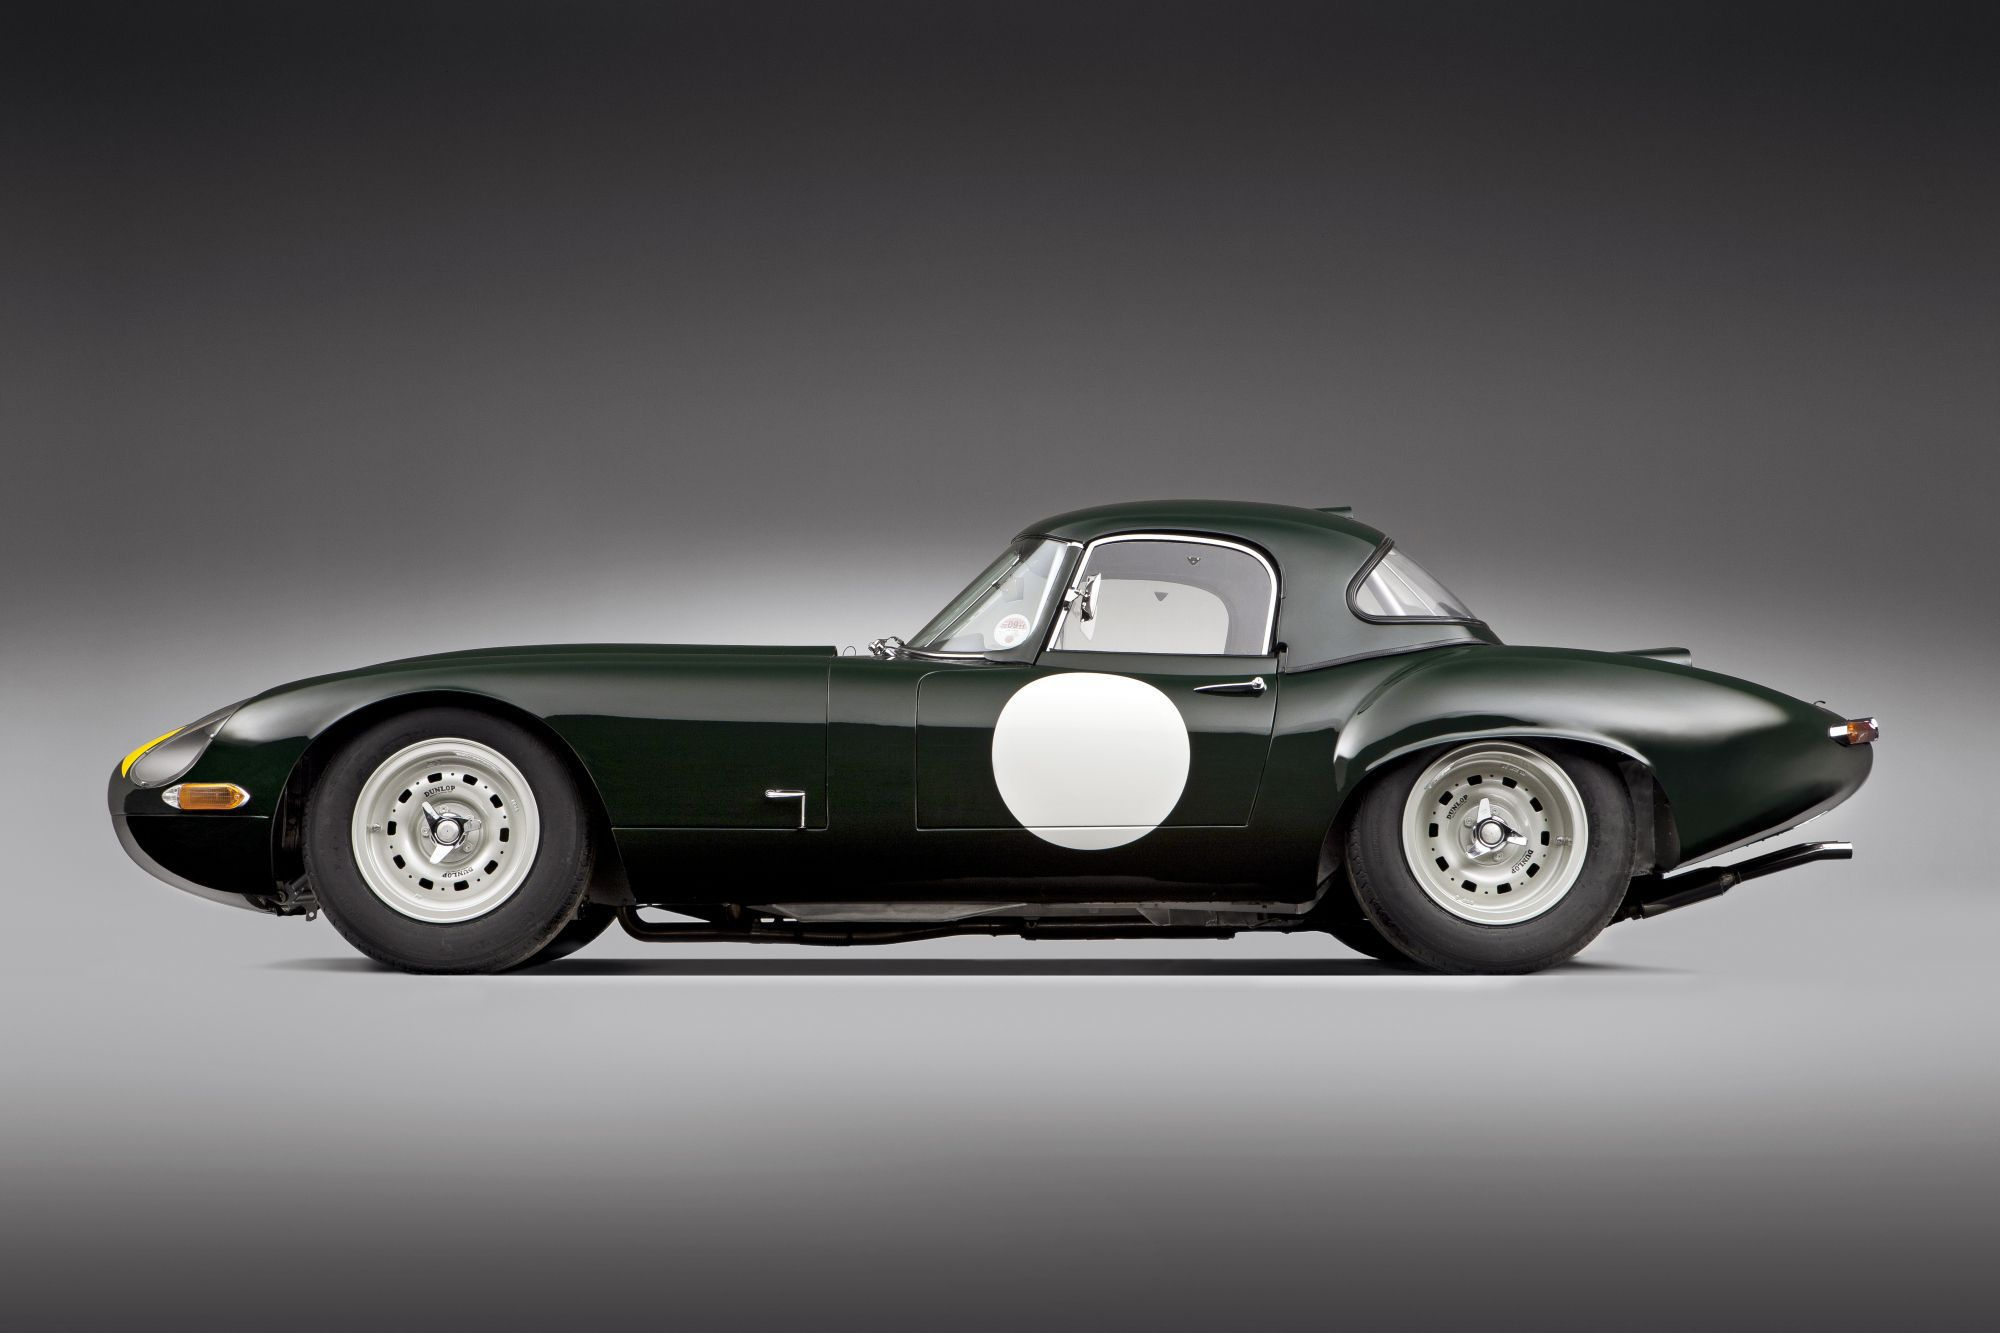 Jaguar E-Type Wallpapers Images Photos Pictures Backgrounds